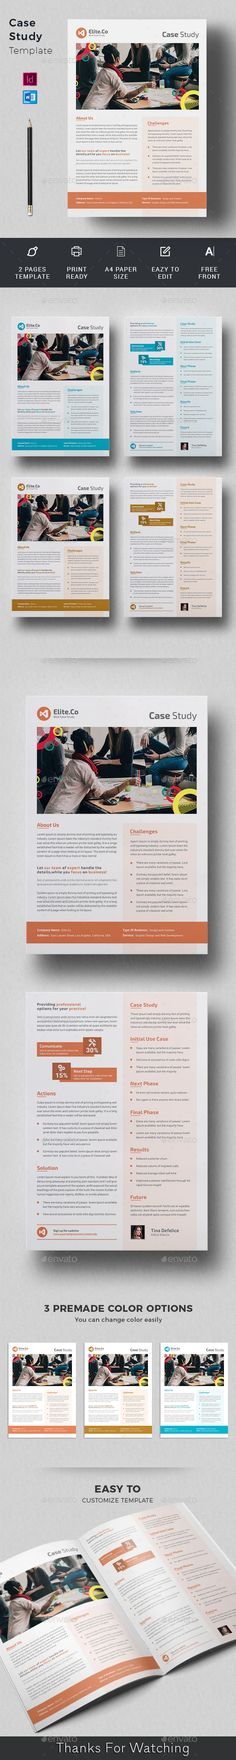 Case Study Template, Page Template, Flyer Template, Templates, A4 Paper, Paper Size, Printed Portfolio, Change Image, Editorial Design